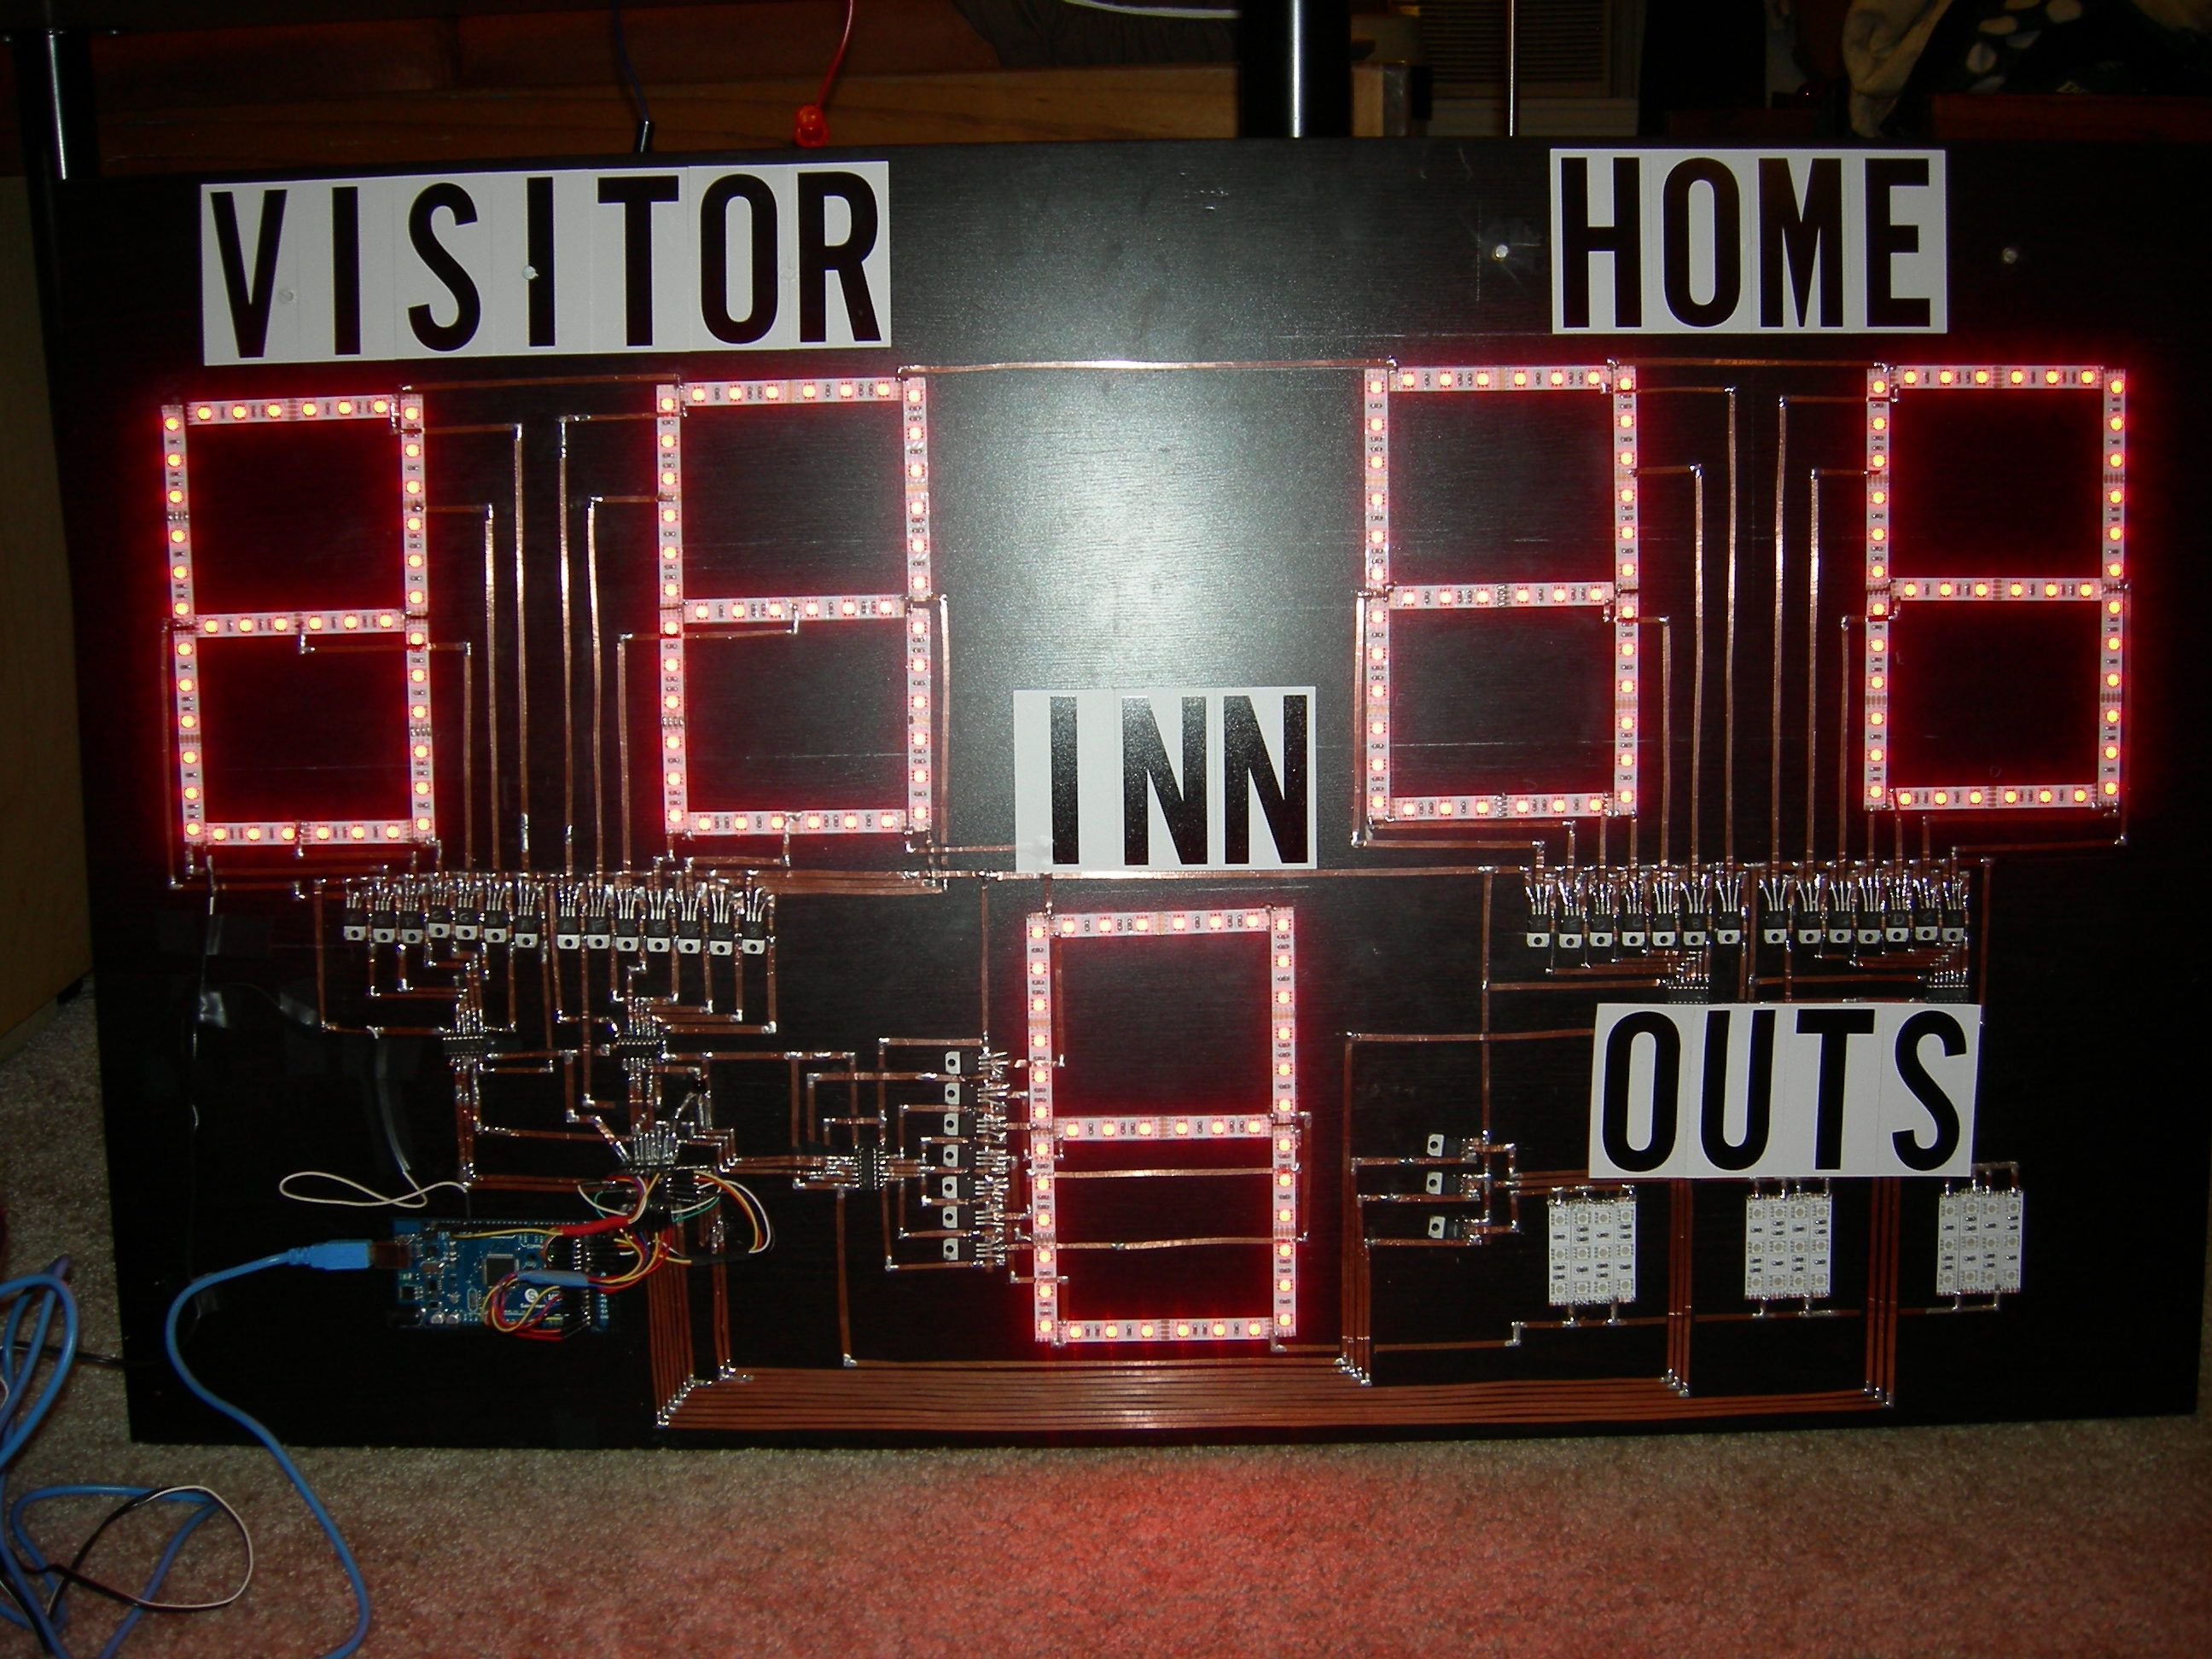 led strip projects remote controlled arduino scoreboard using led strips